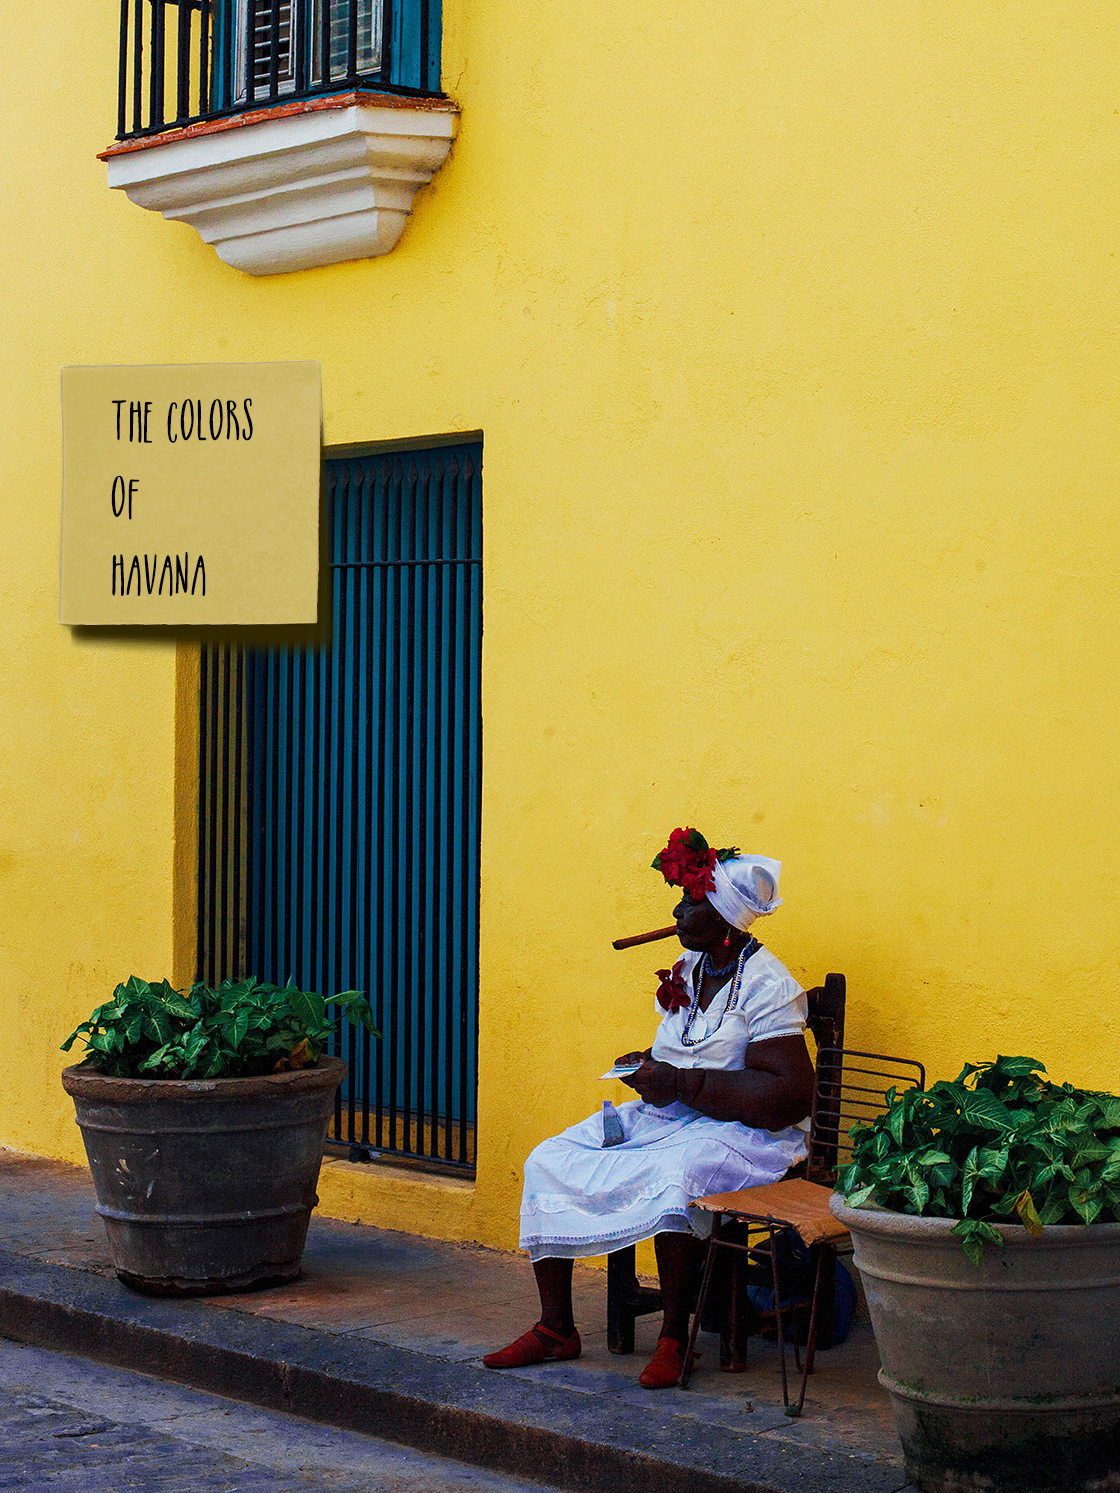 cuban colors 1